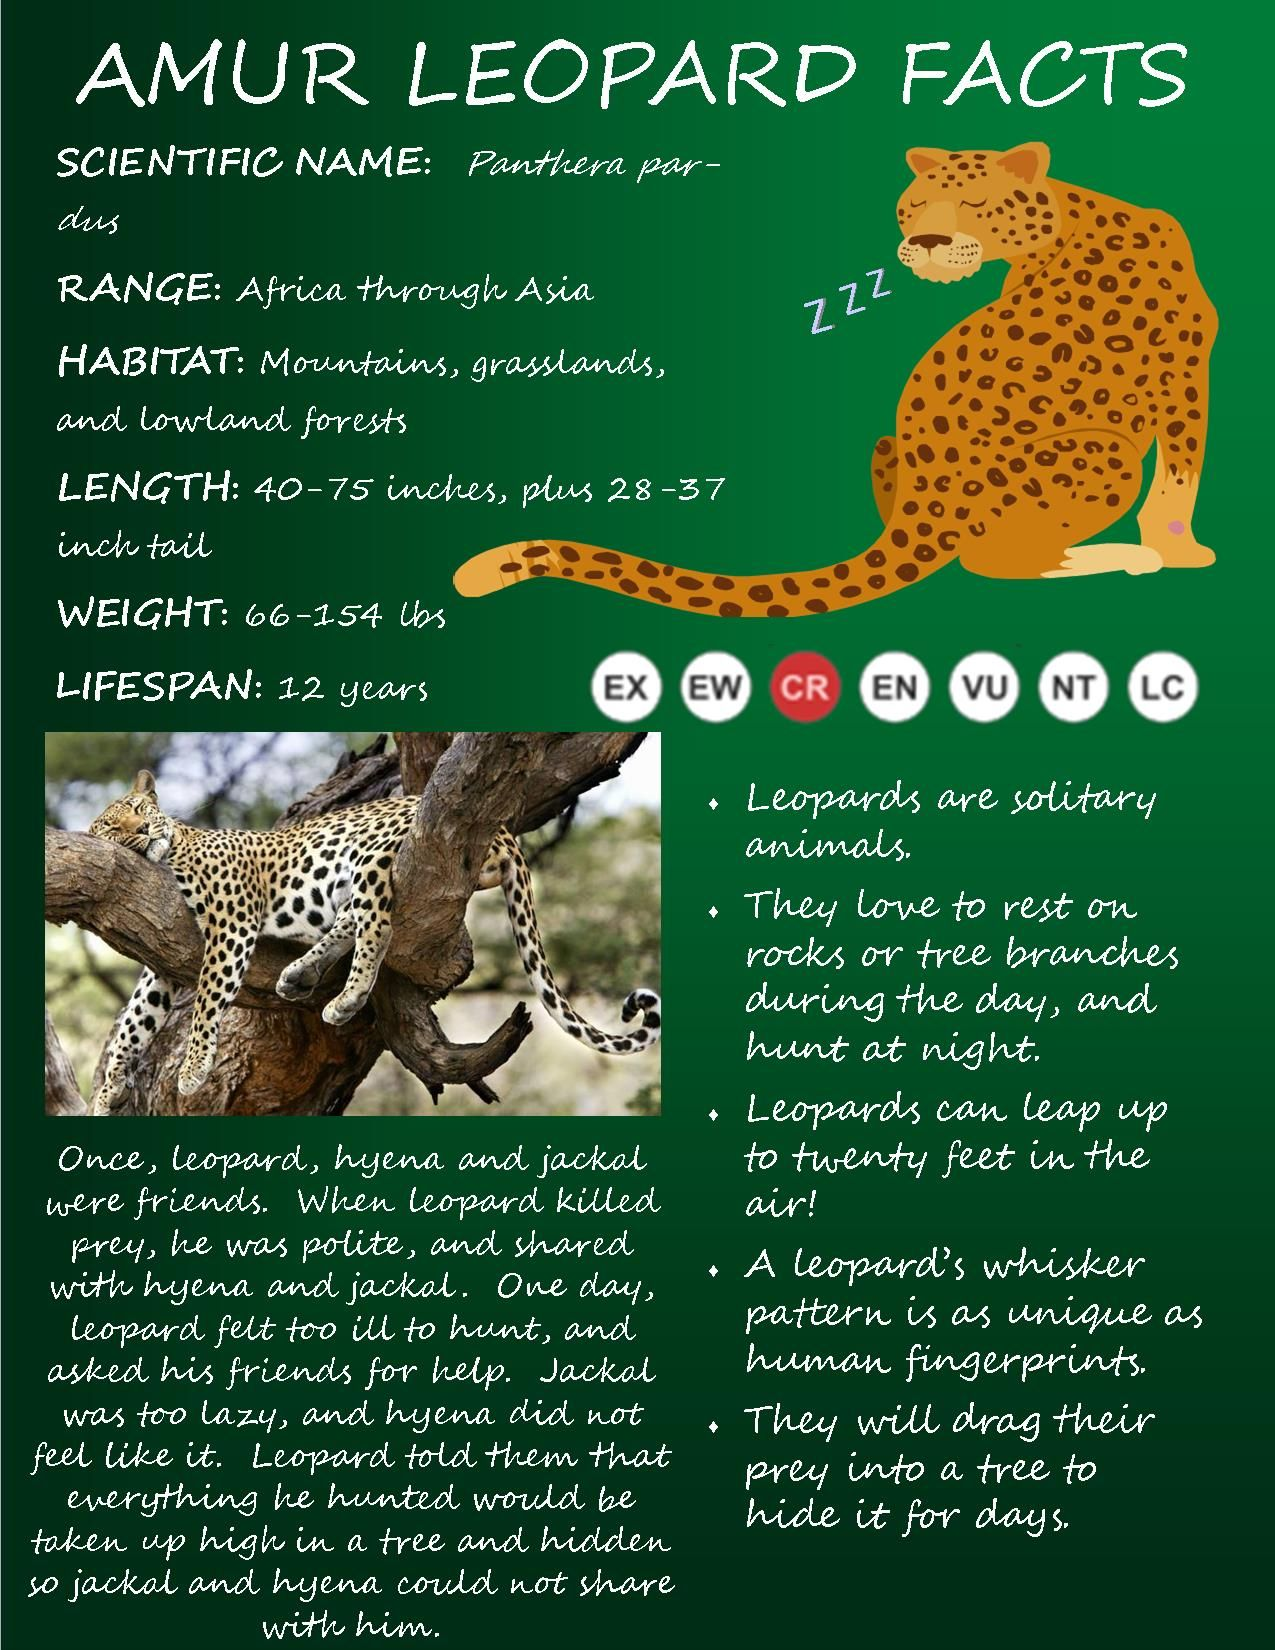 Today We Re A Sharing Facts On The Beautiful Amur Leopard